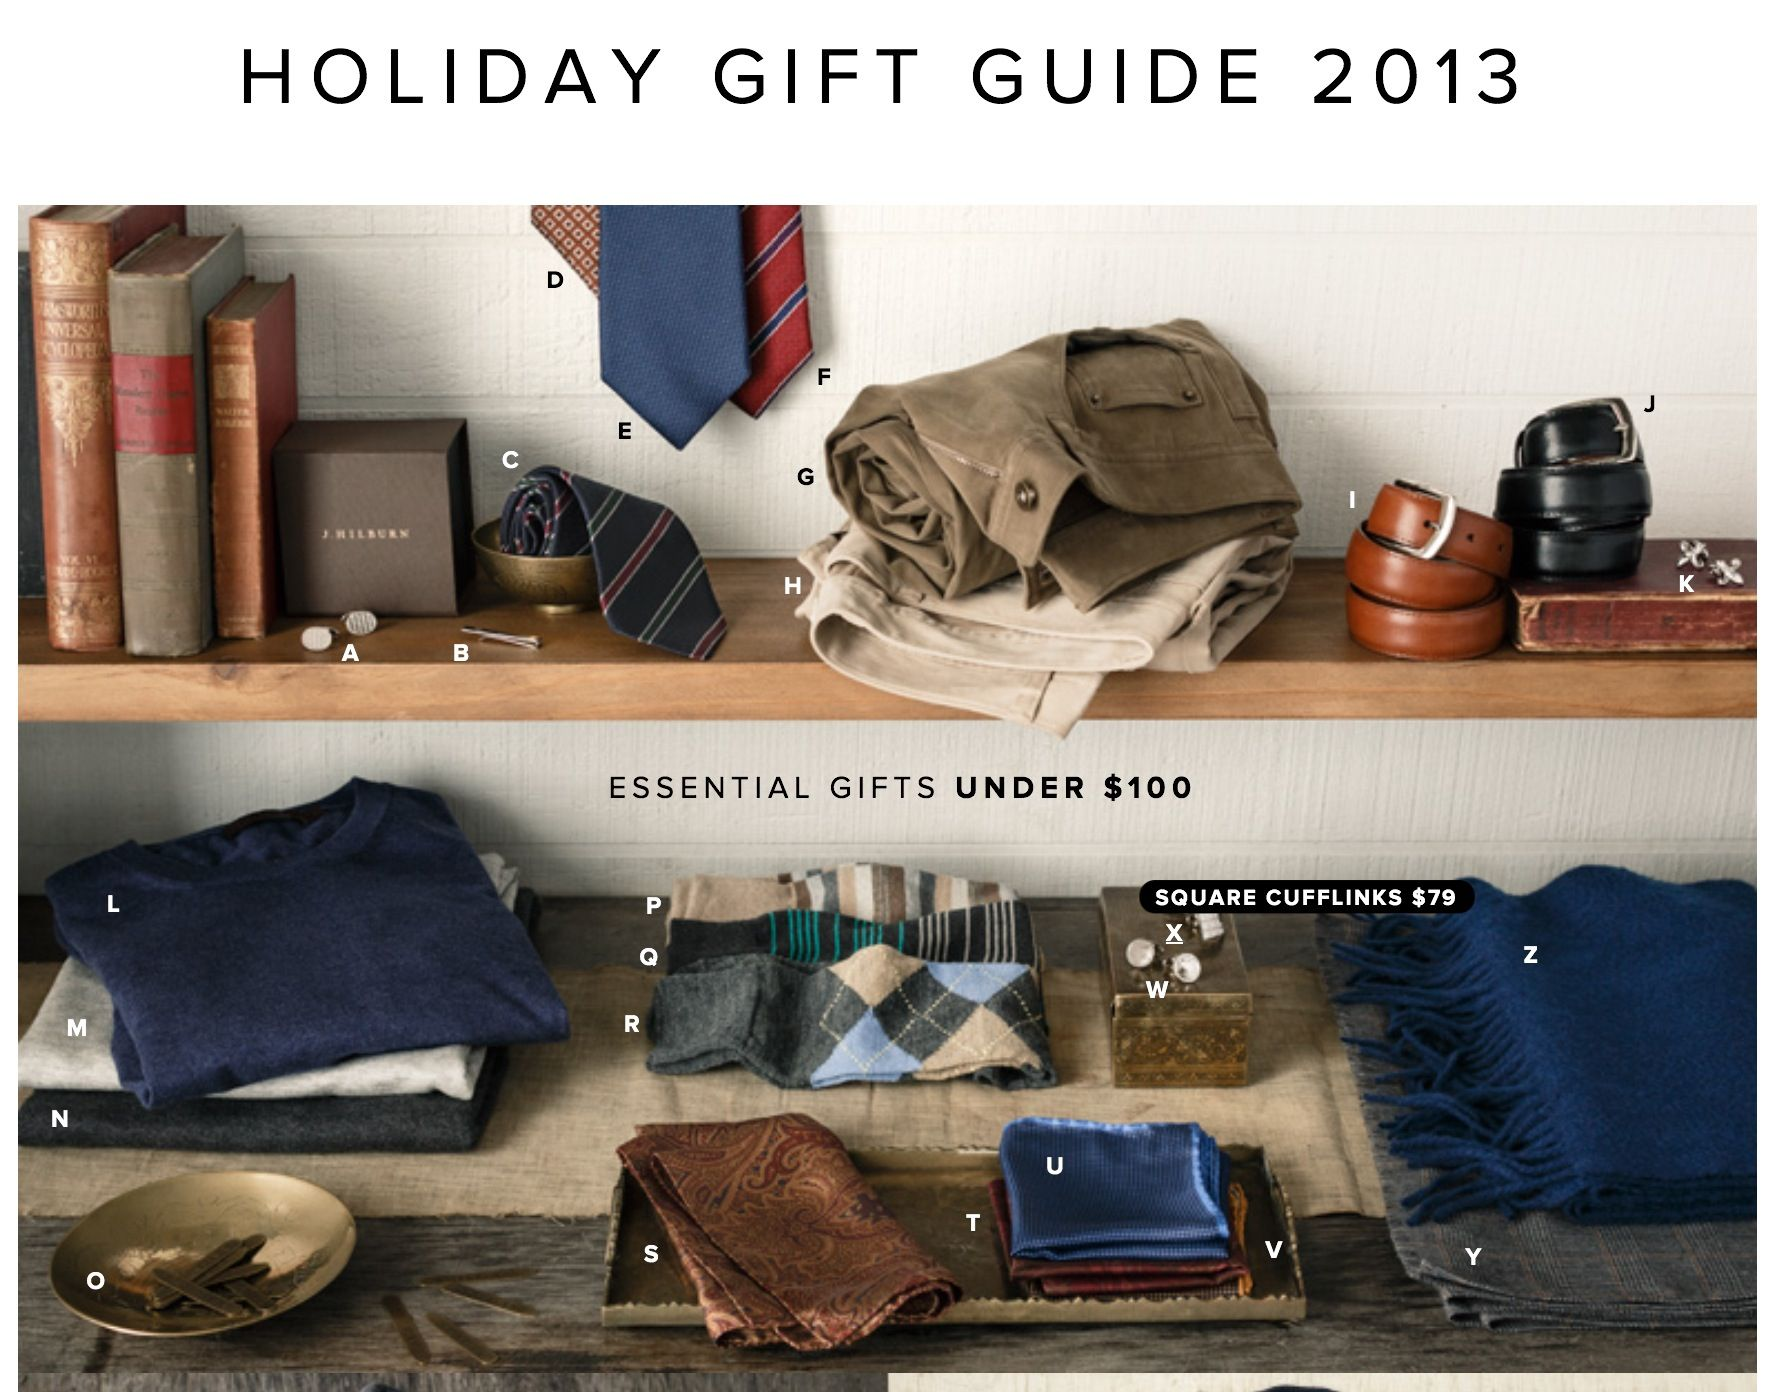 J. Hilburn offers an assortment of gifts for men for under $100. Shop now at http://richardaldrich.jhilburn.com #jhilburn #jhilburnco #jhilburnstyle #style #gifts #holidays #christmas #mensstyle #mensclothing #menswear